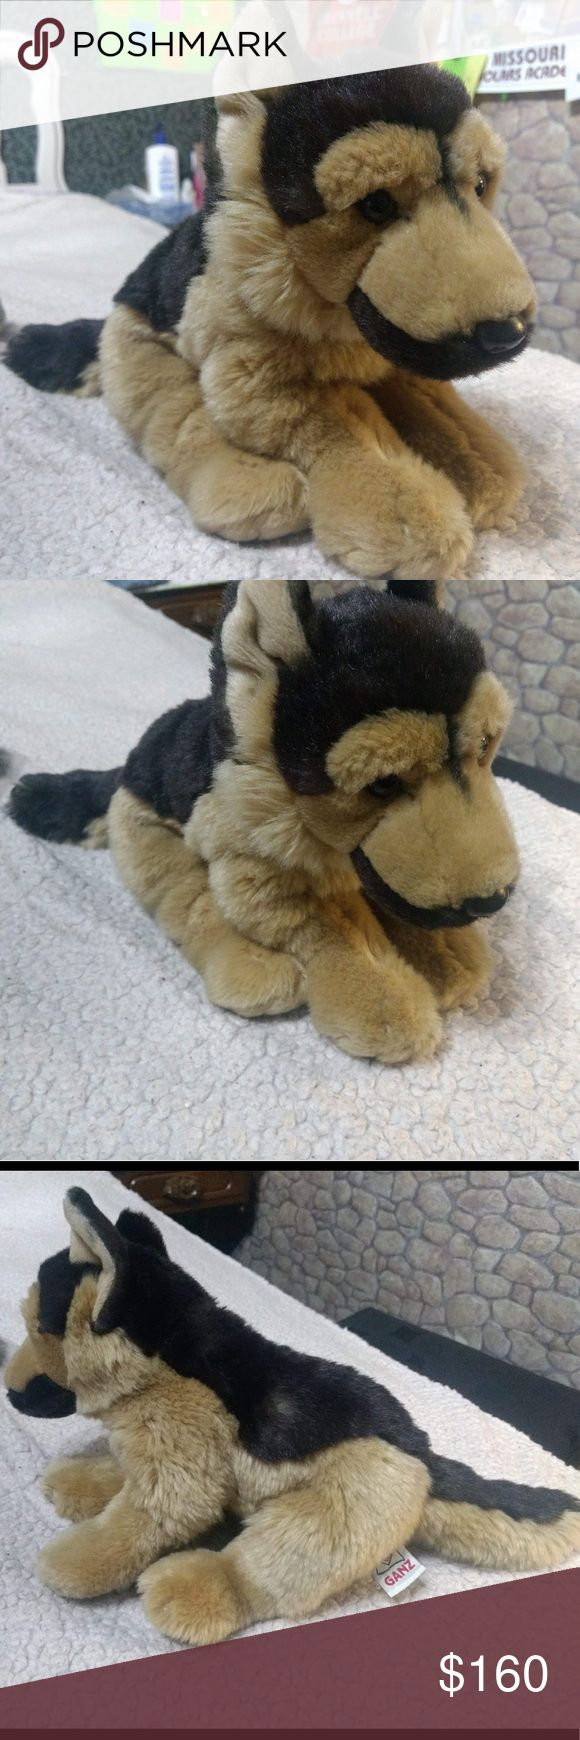 ULTRA RARE Ganz Signature Webkinz German Shepherd VERY RARE large German Shepherd plush. Very good condition with no flaws. No tag. Perfect for collectors. These guys are going for upwards of $200 on eBay, so take this opportunity while it lasts!  His name is Blitz, he is very brave, and he was the last one at Justice when I was 10 so he is very close to my heart!  Shoot me an offer and bundle to save! Also, I have LITERALLY 100+ Webkinz and will be more than willing to add to a bundle if I…